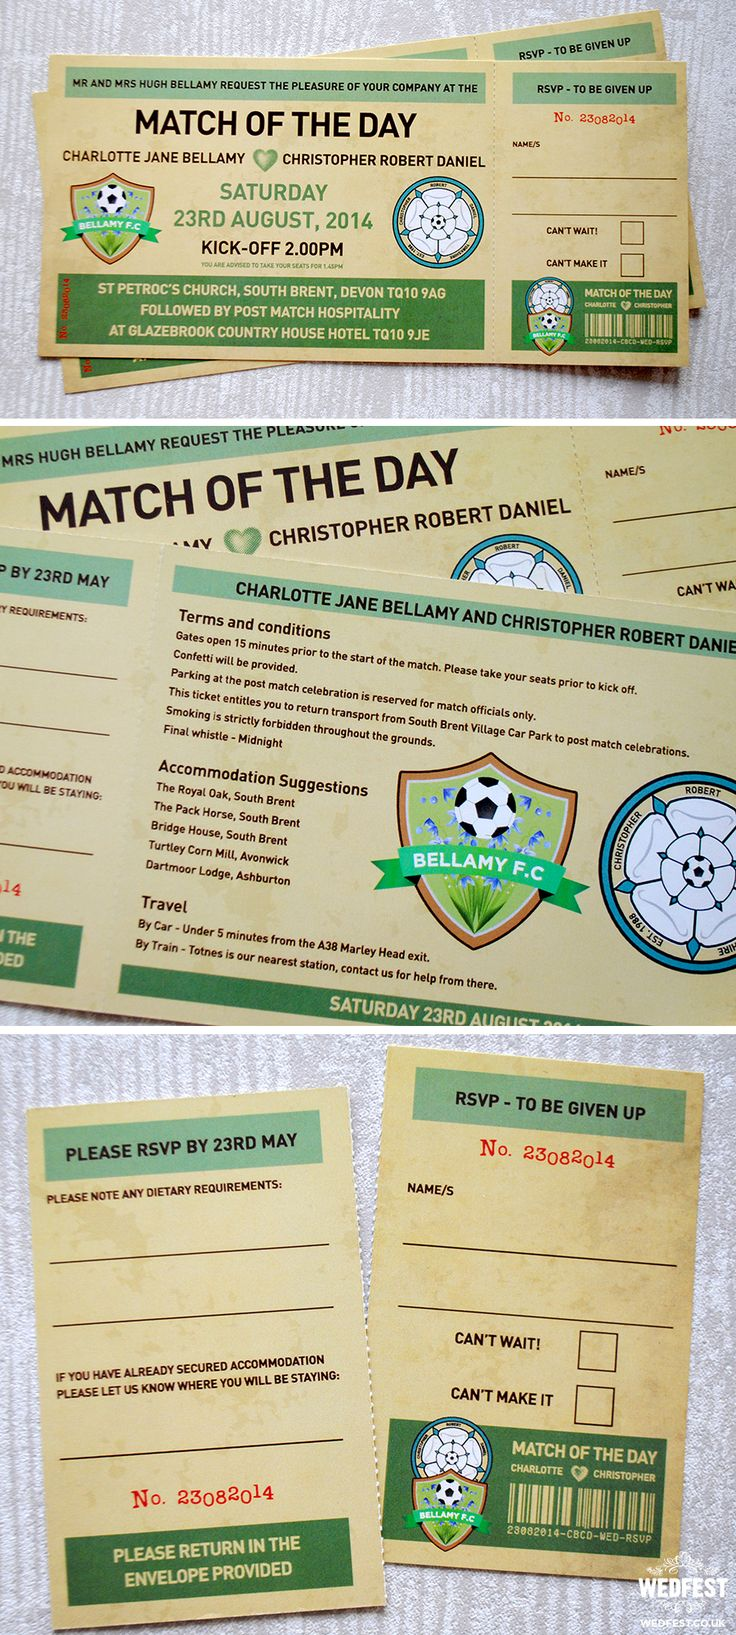 match of the day vintage football ticket wedding invites http://www.wedfest.co/football-themed-wedding-stationery/